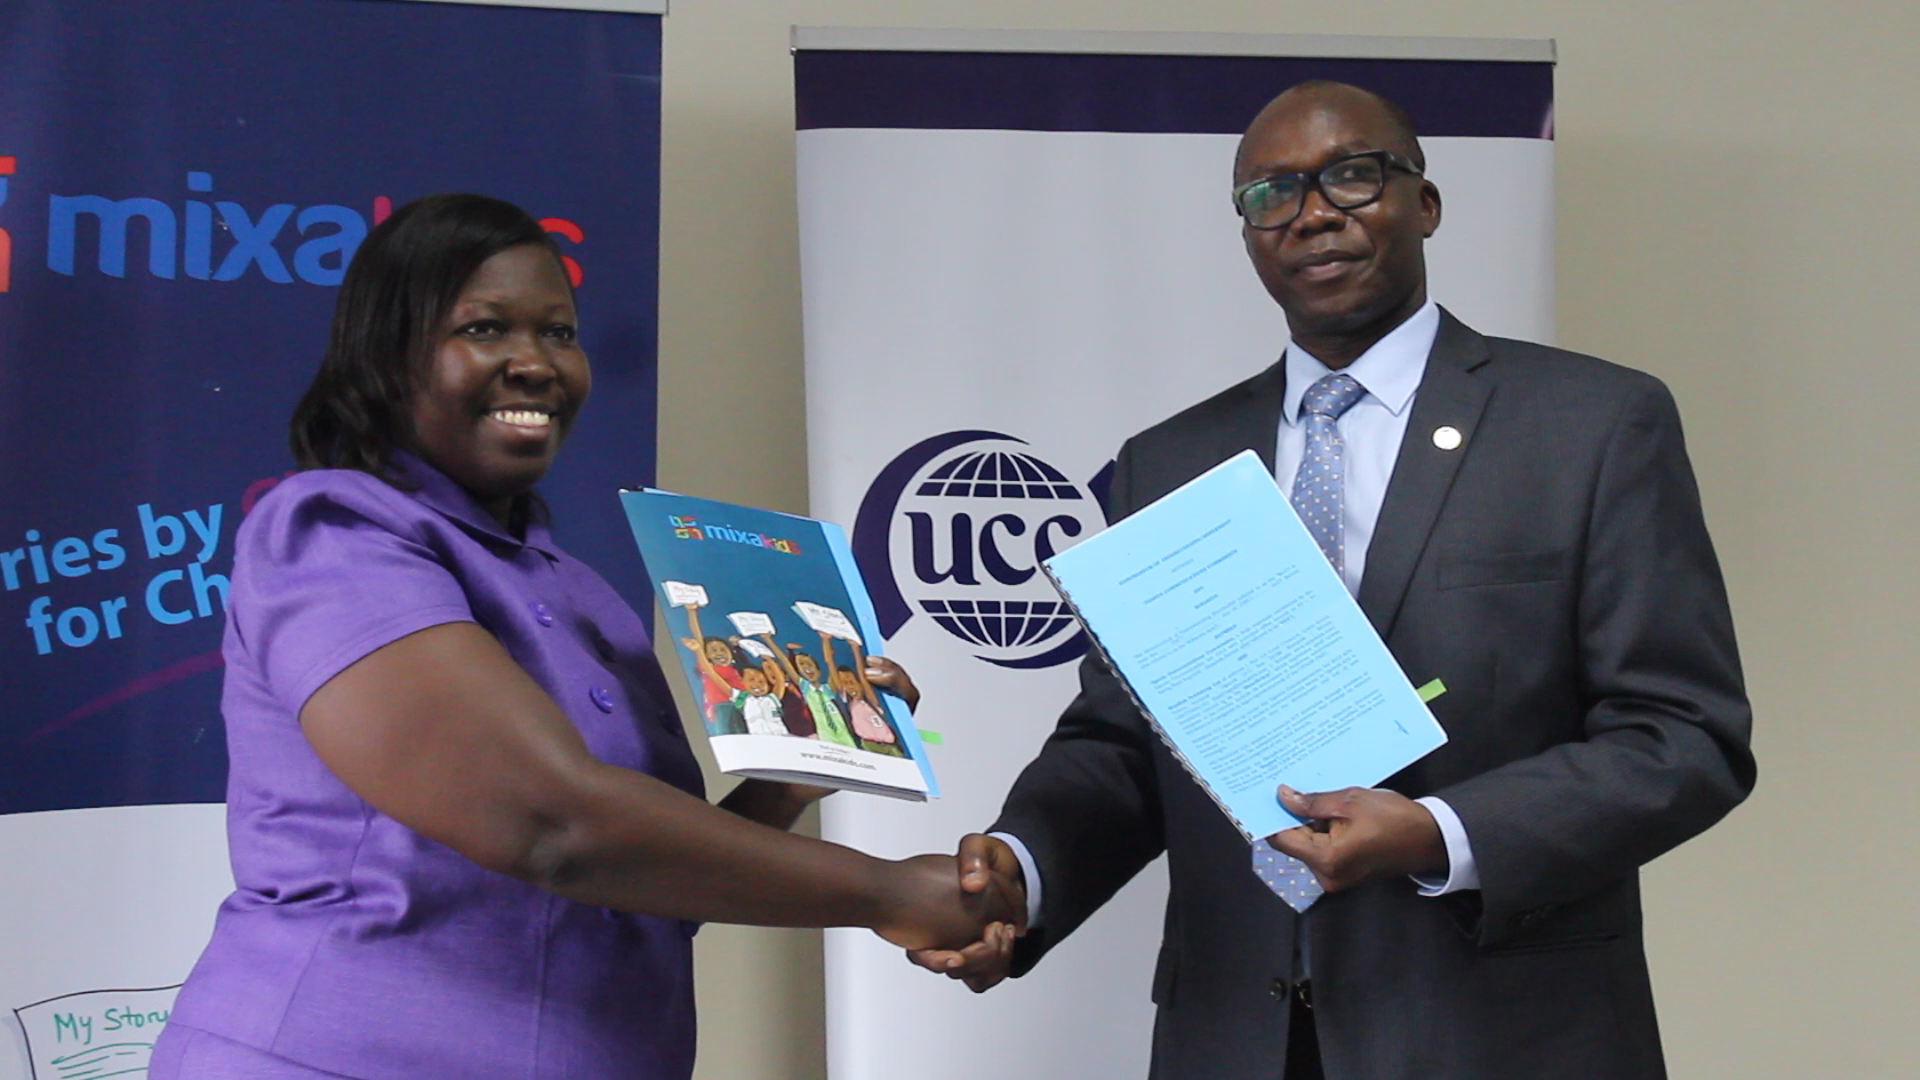 Mixa Publishing Limited Signs a Memorandum of Understanding with Uganda Communications Commission